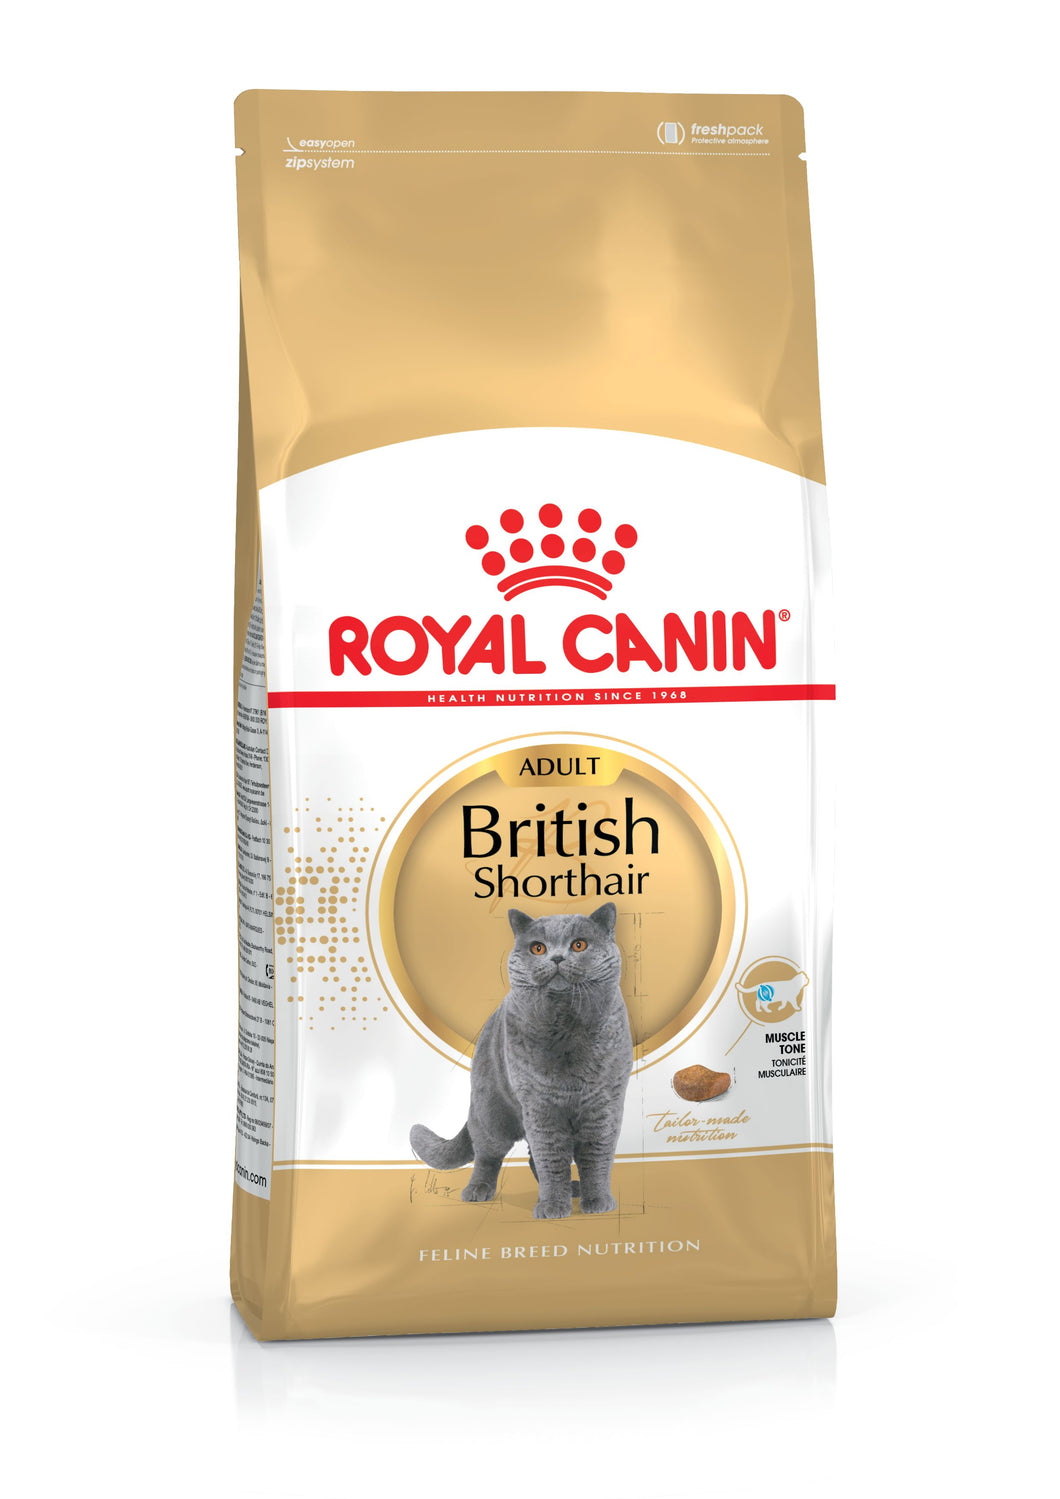 Royal Canin British Shorthair Adult Dry Cat Food 4KG